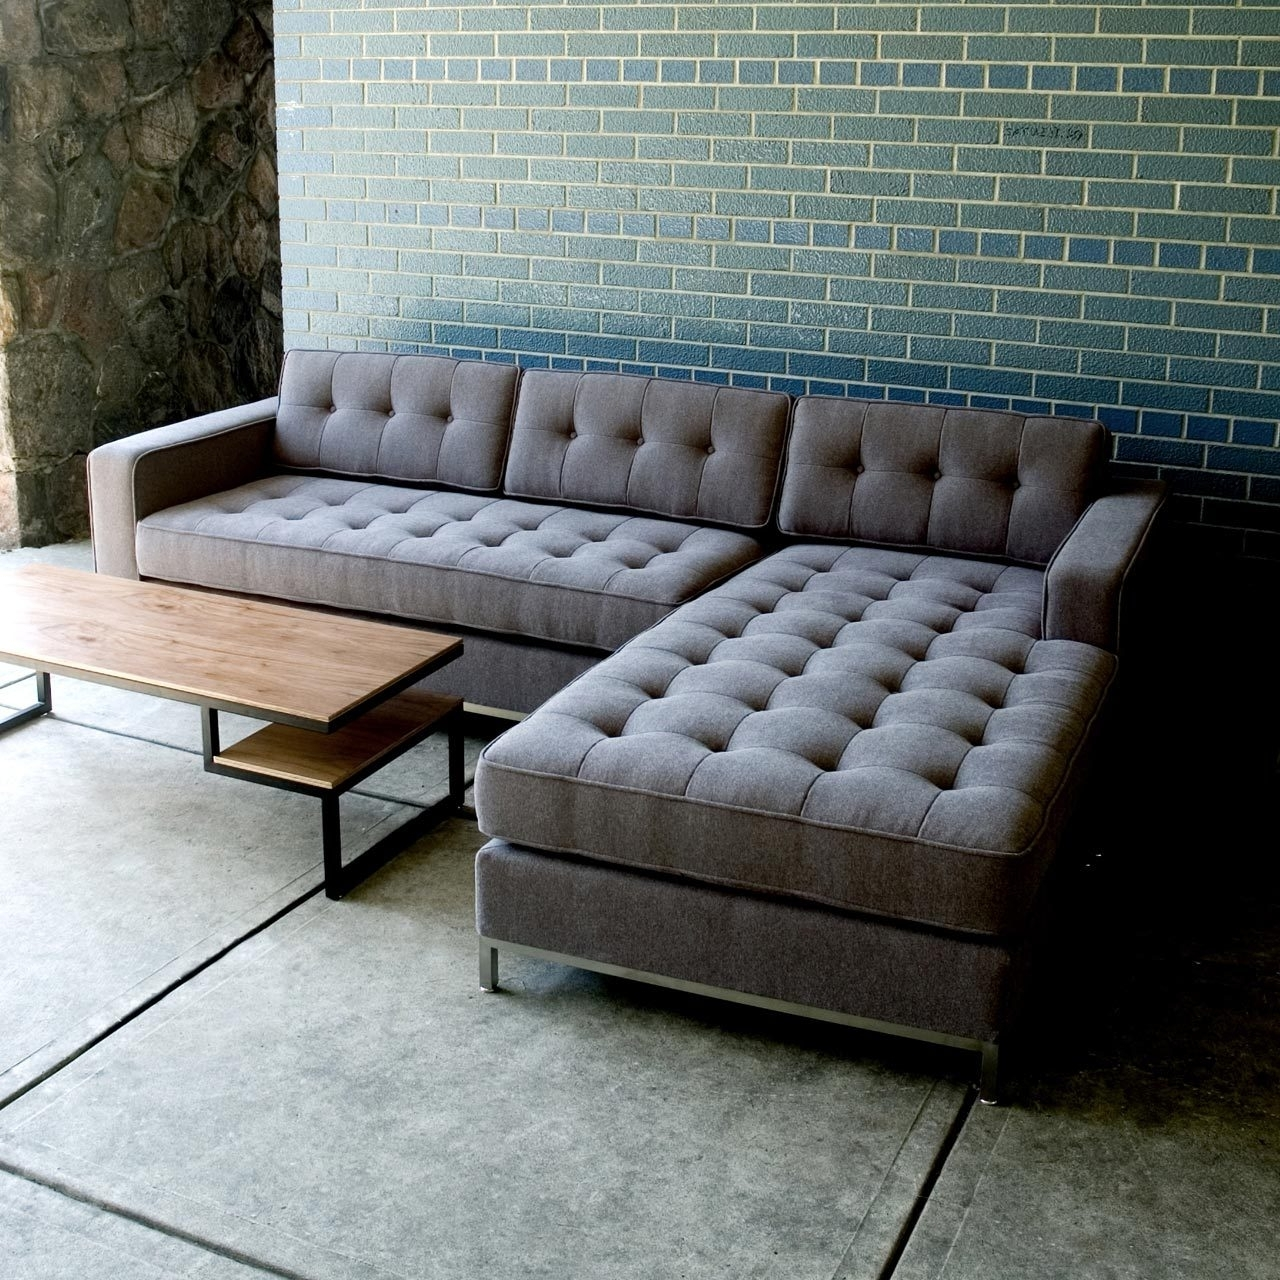 Pigment – Gus Modern Jane Bi Sectional Sofa, (Http://www Throughout Widely Used Jane Bi Sectional Sofas (View 13 of 15)